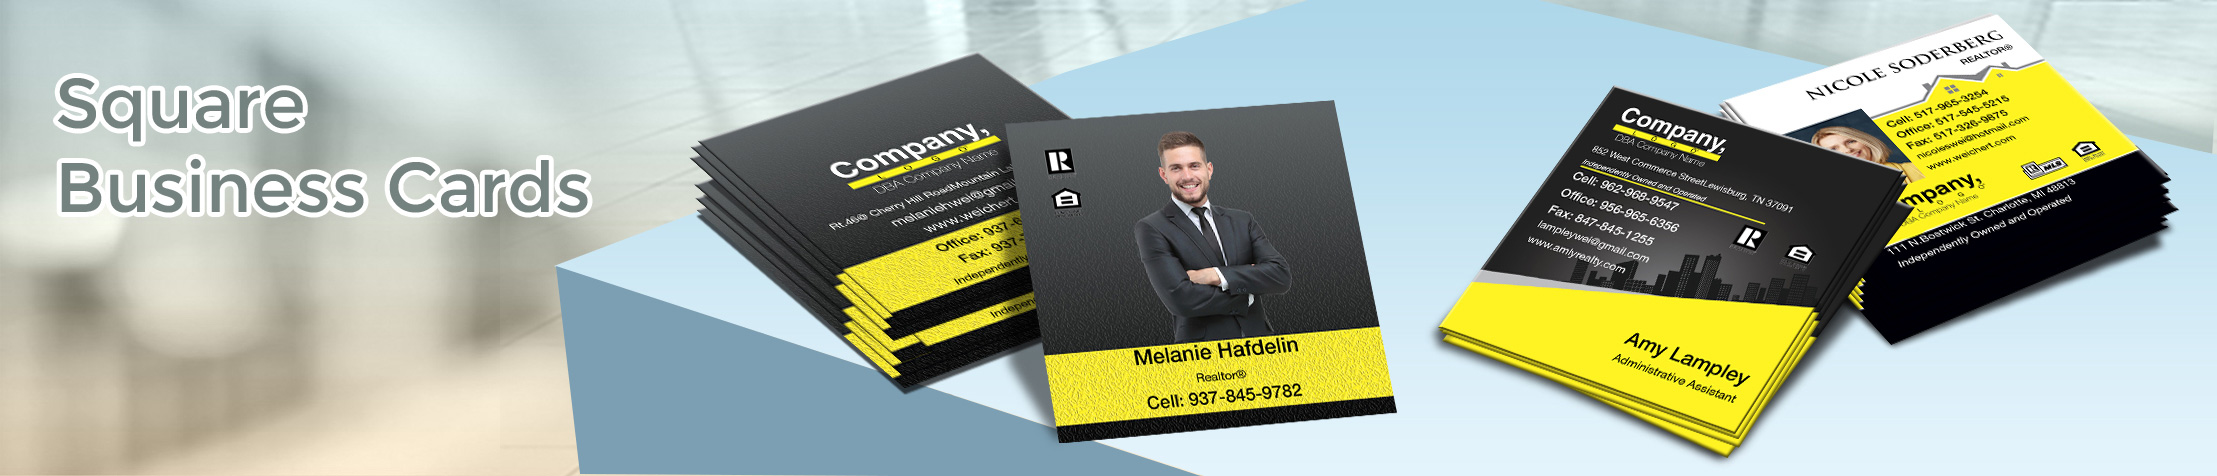 Weichert Real Estate Square Business Cards - Weichert  - Modern, Unique Business Cards for Realtors with a Glossy or Matte Finish | BestPrintBuy.com